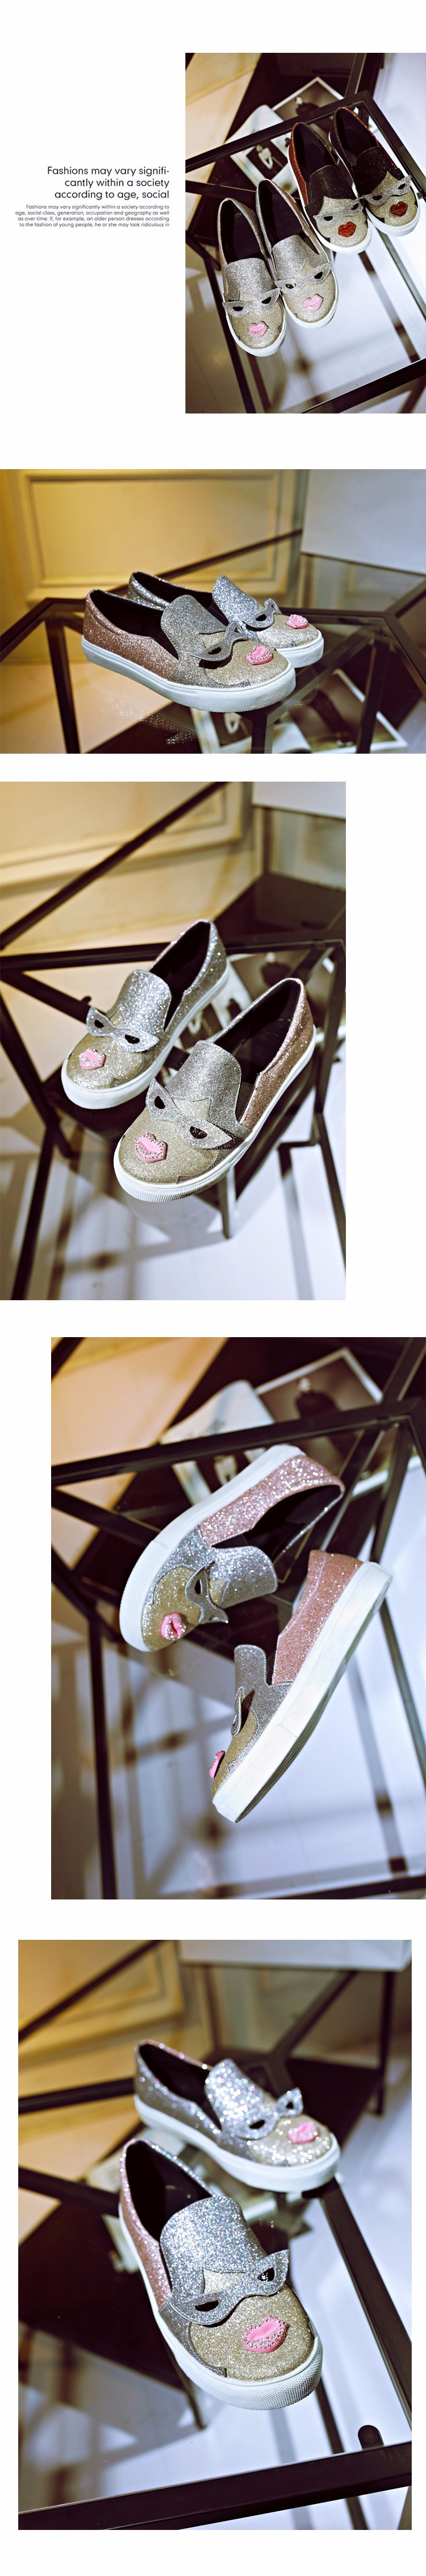 2016 New Spring Women Loafers Casual Flats Heels Round Toe Pink Red Loafer Shoes Comfort Women Single Shoes Plus Size 40-43 z3.5